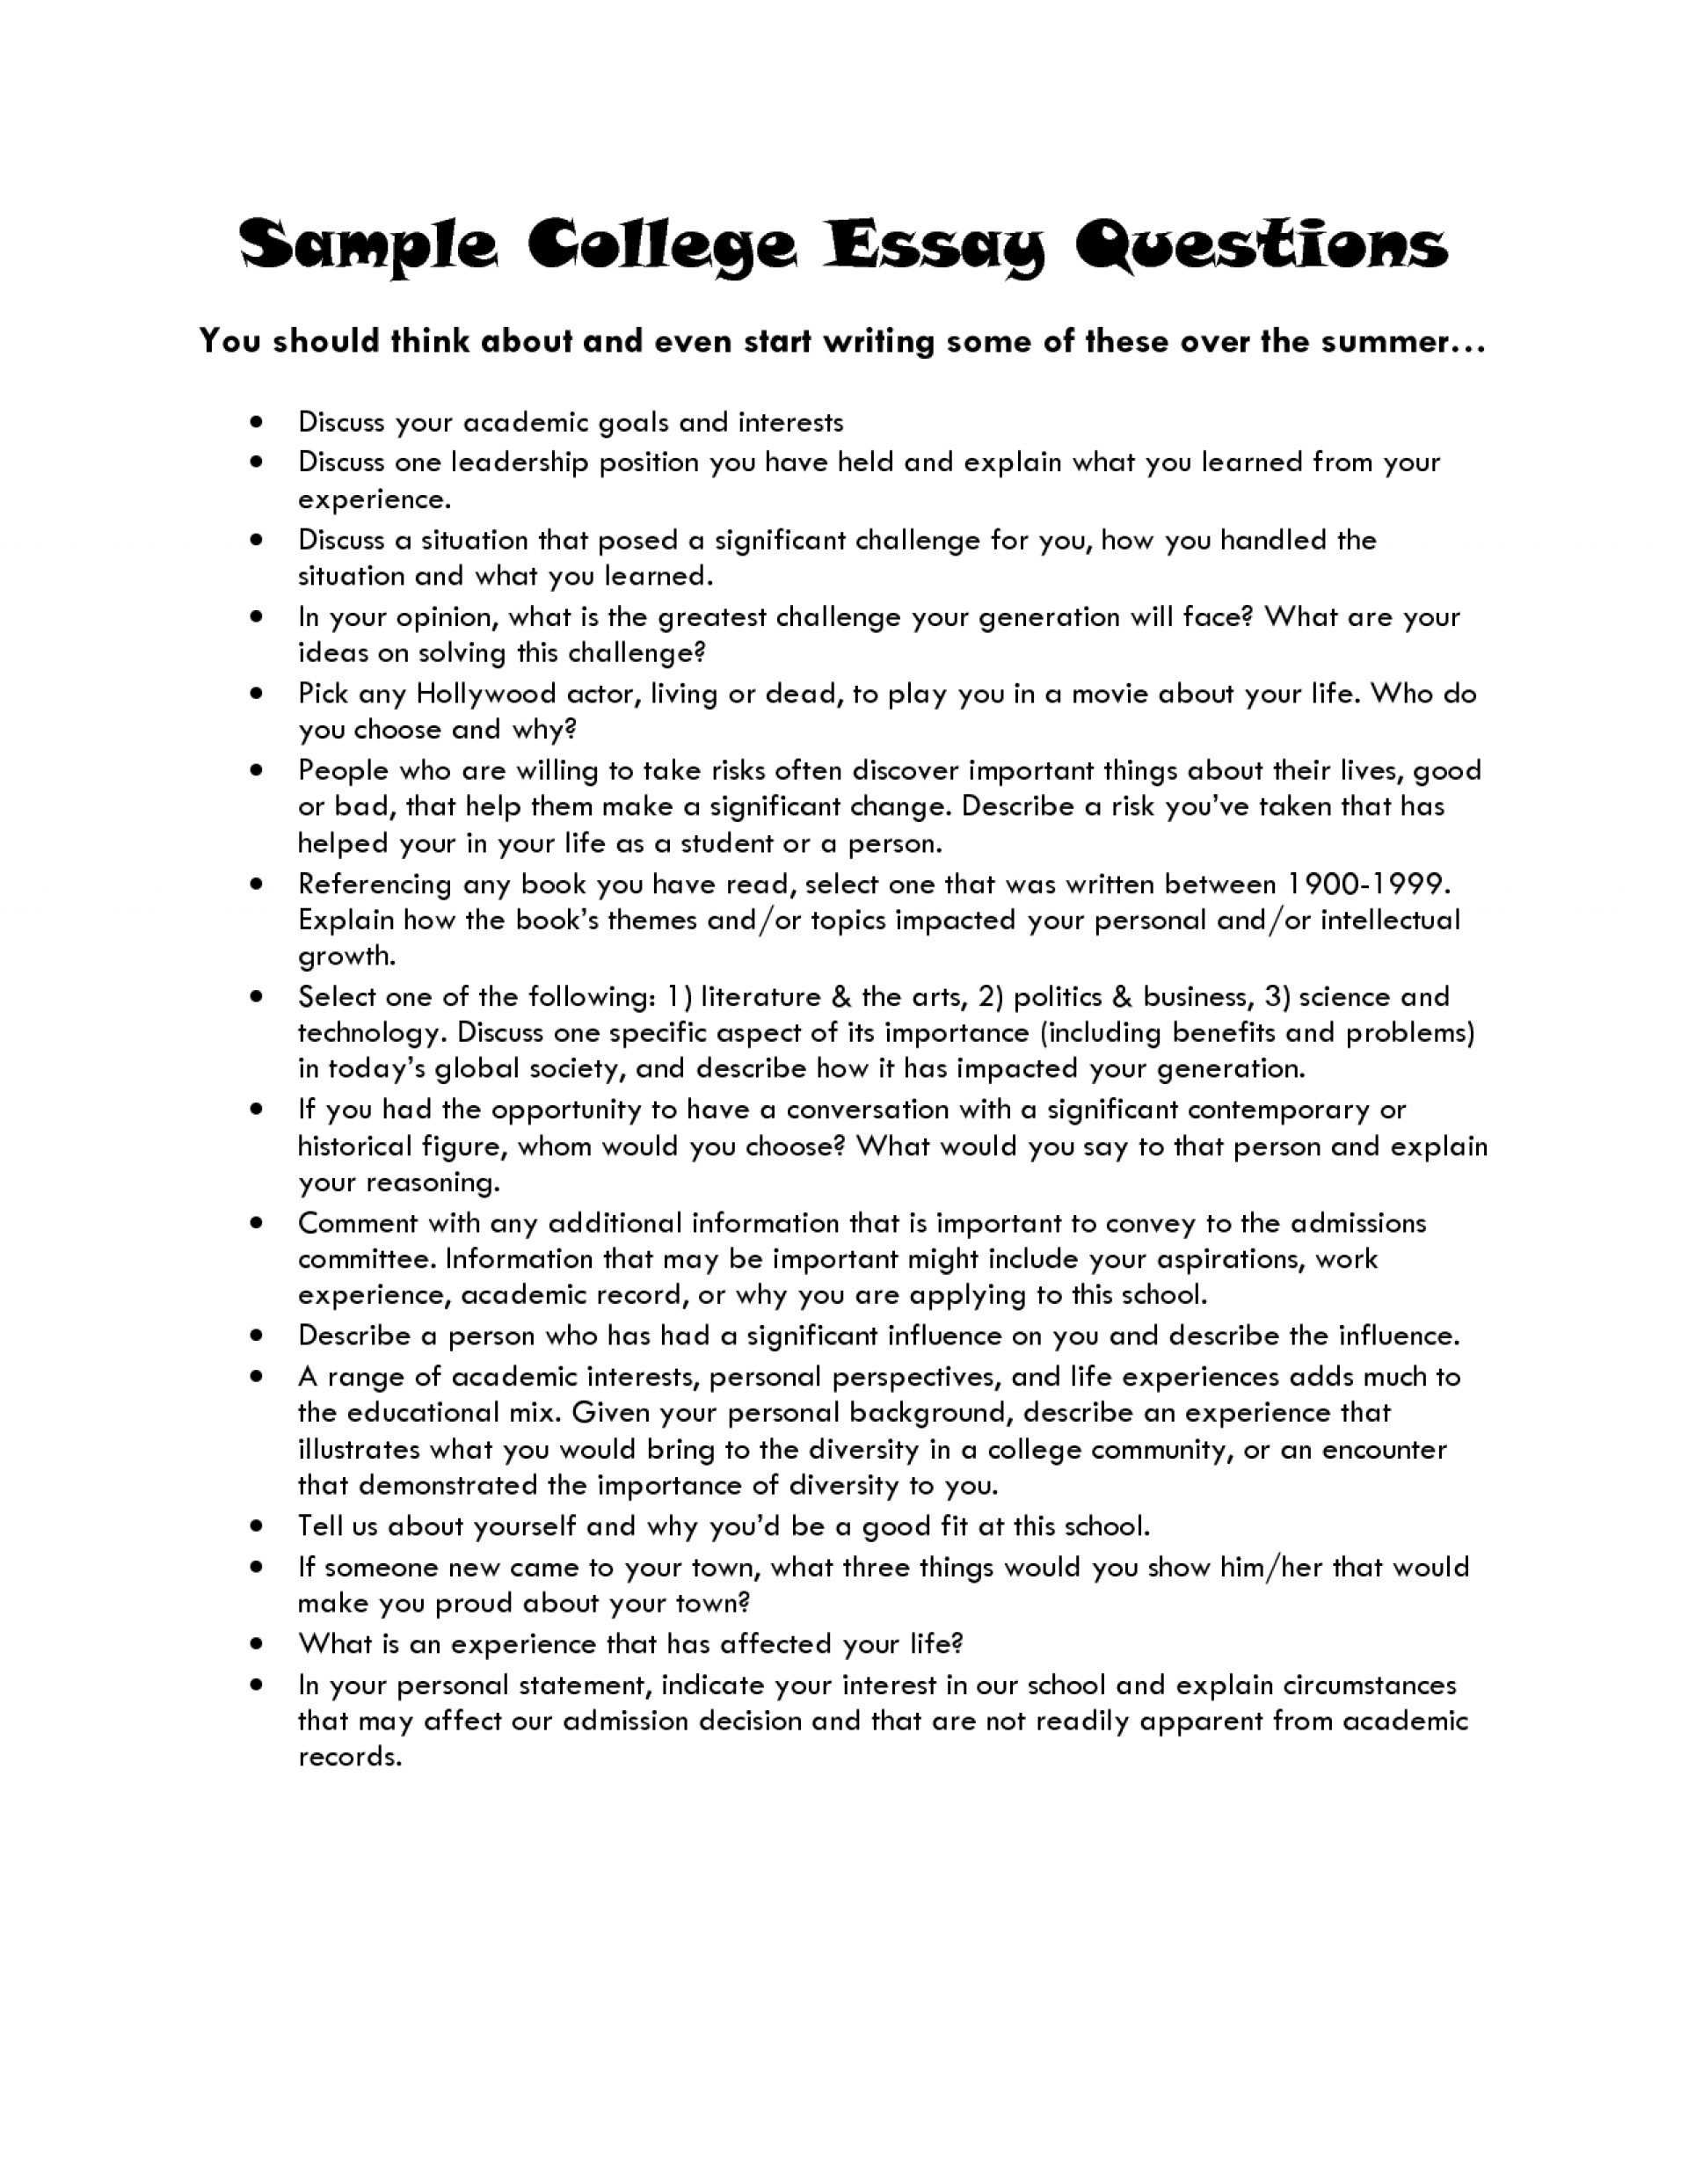 015 Essay Example Academic Goals Sample College Questions L Virginia Tech Imposing Prompts How To Answer 2017 1920